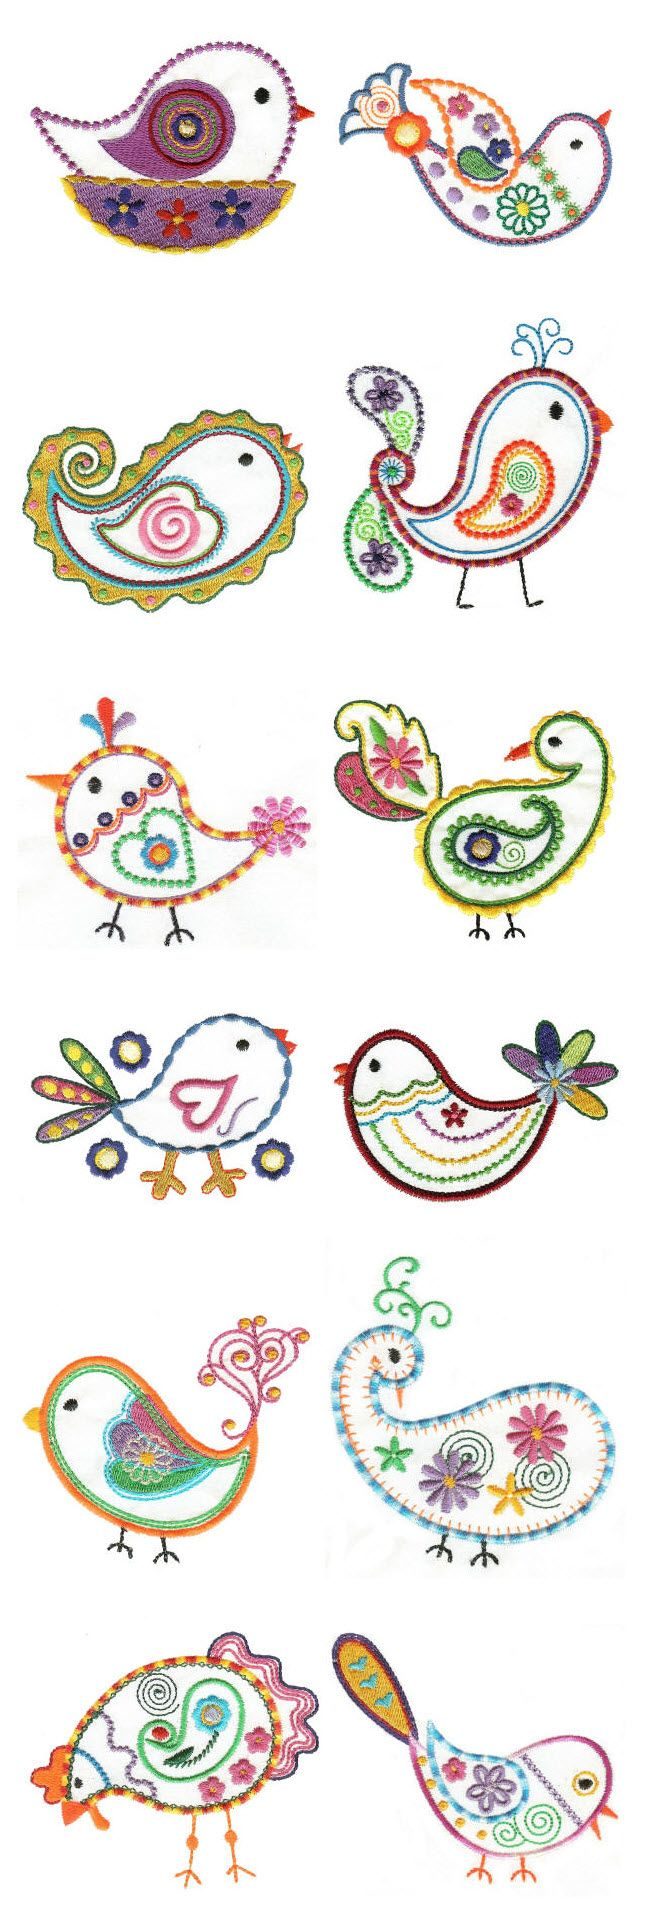 Embroidered birdies. These are cute